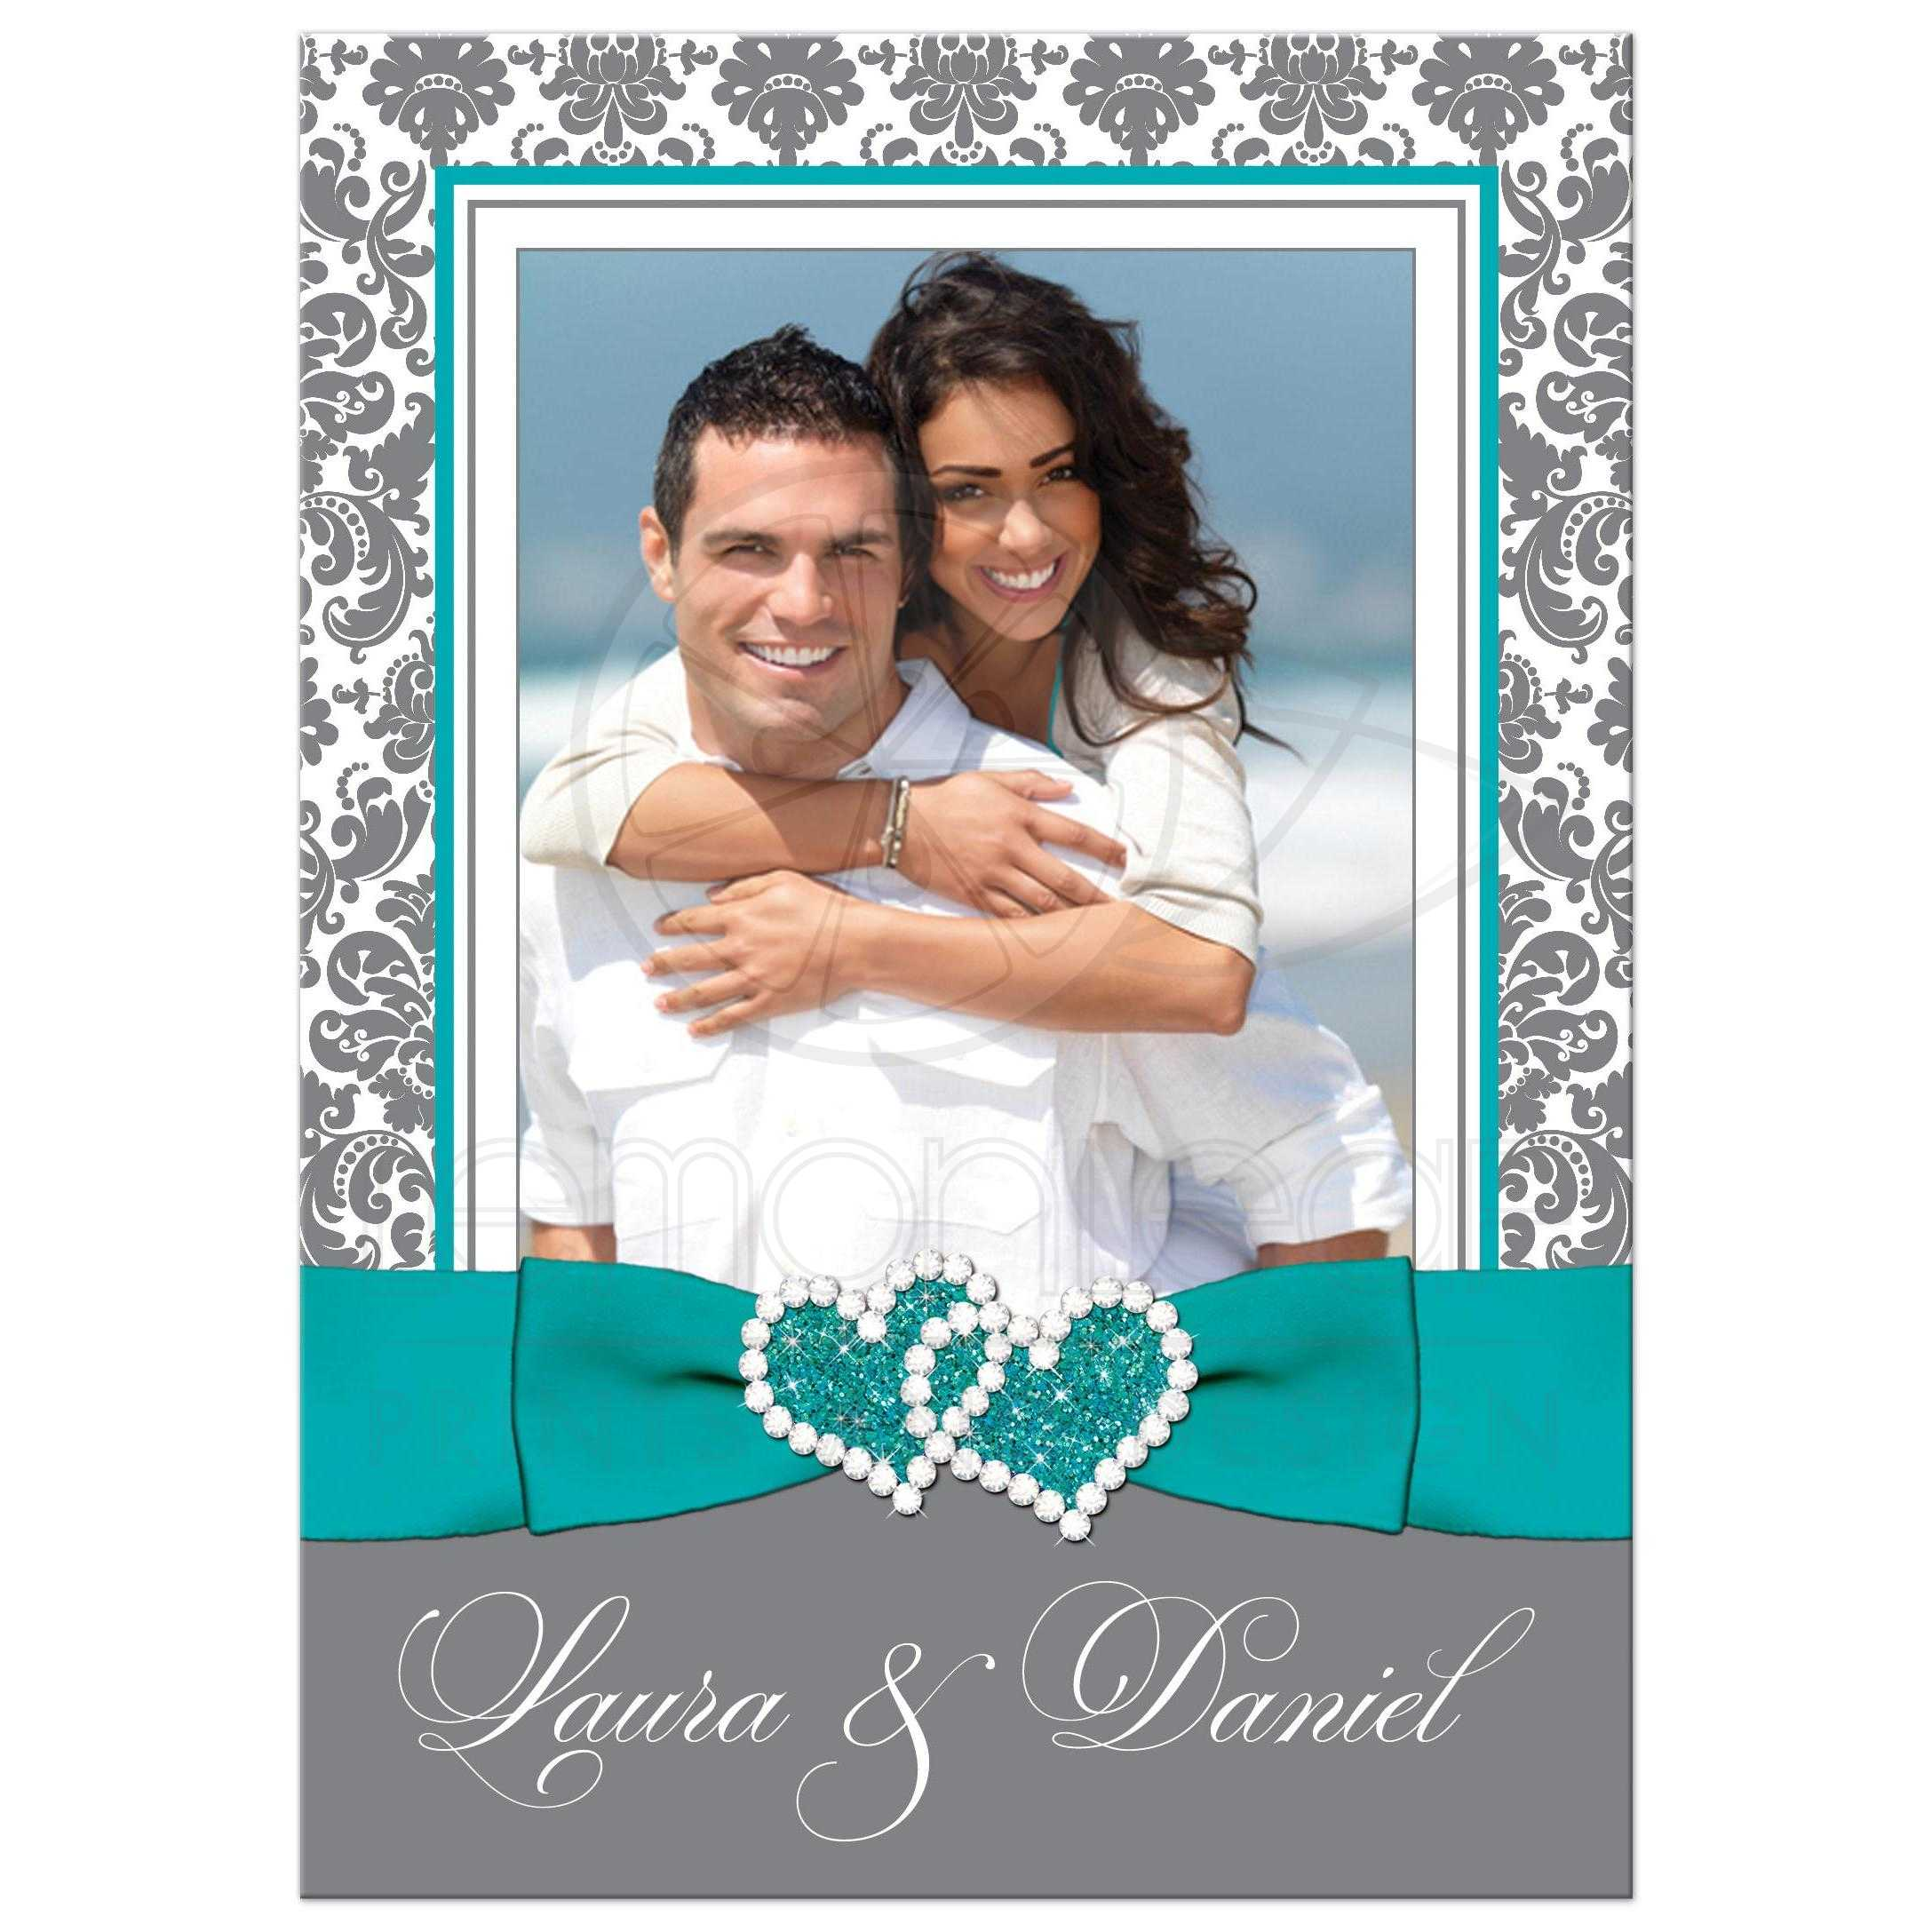 Aqua Green Grey And White Damask Photo Template Wedding Invitations With Turquoise Or Teal Ribbon